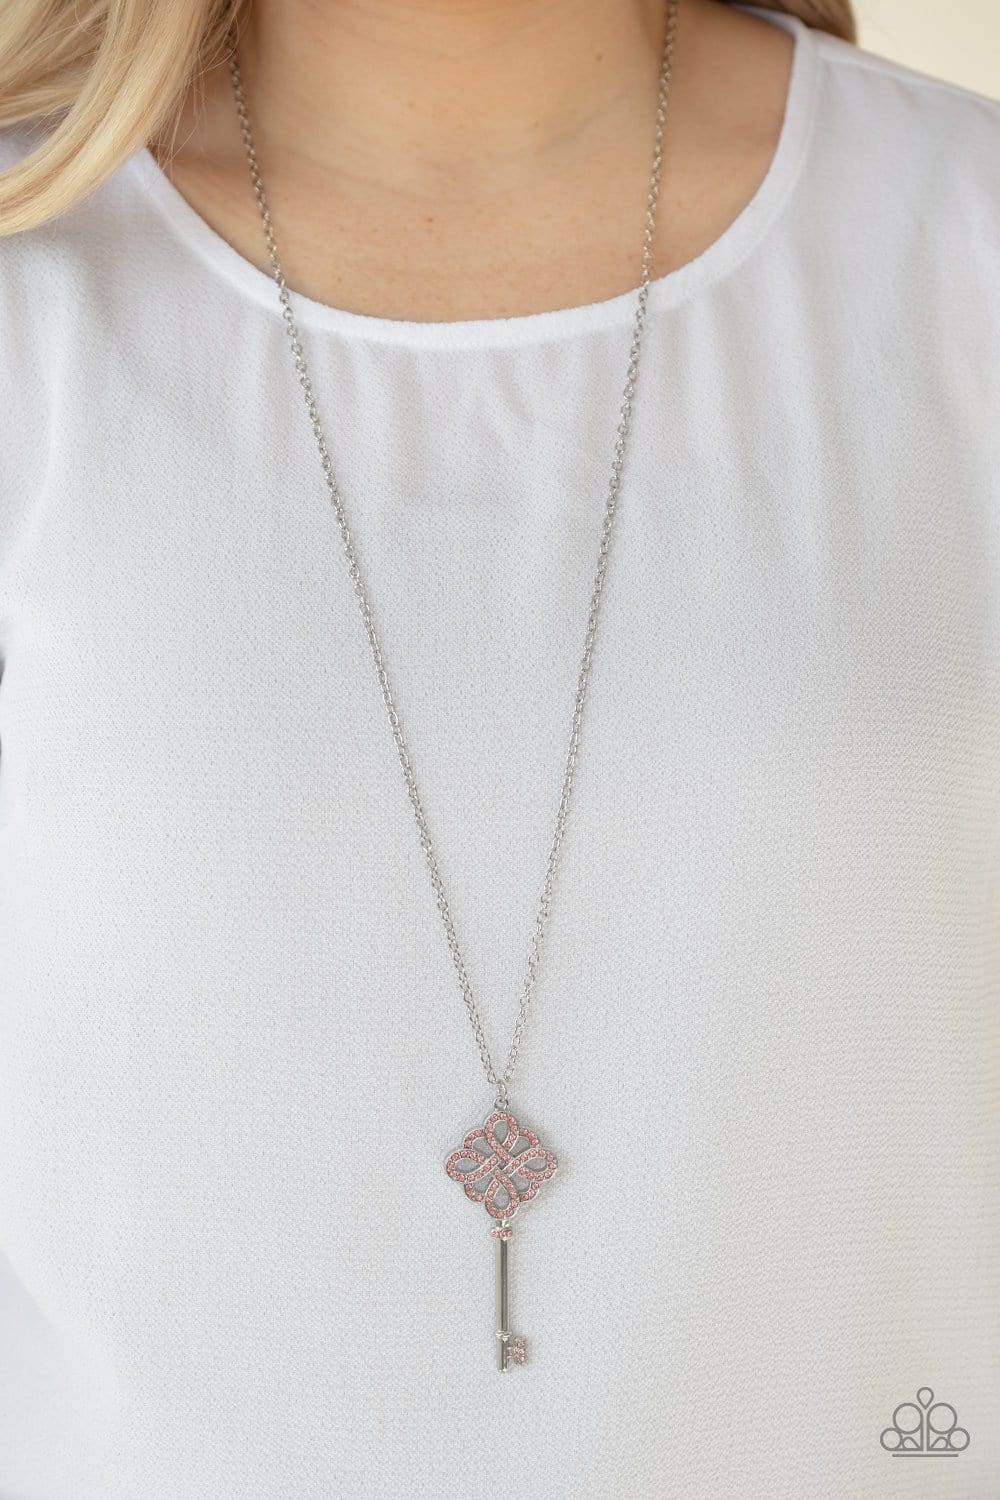 Paparazzi: Unlocked - Pink Rhinestones Necklace - Jewels N' Thingz Boutique